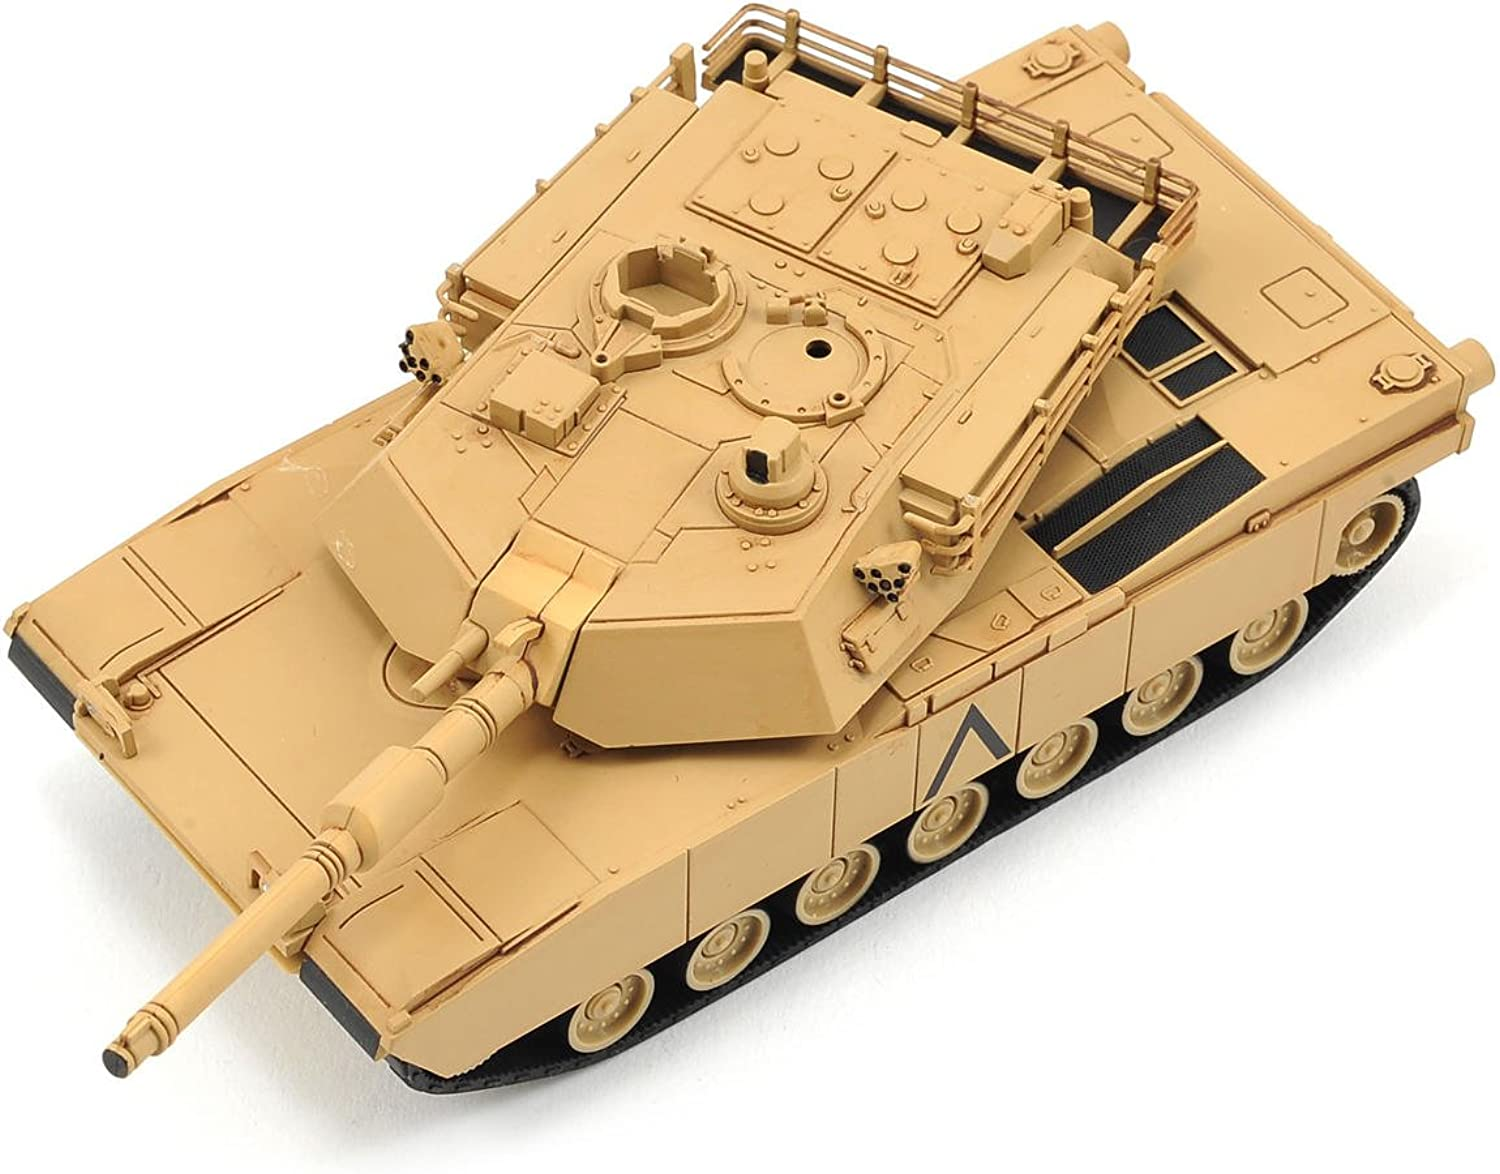 Kyosho US Army USMC Abrams M1A2 Mini blueetooth Tank, Tan (Sand) Camo